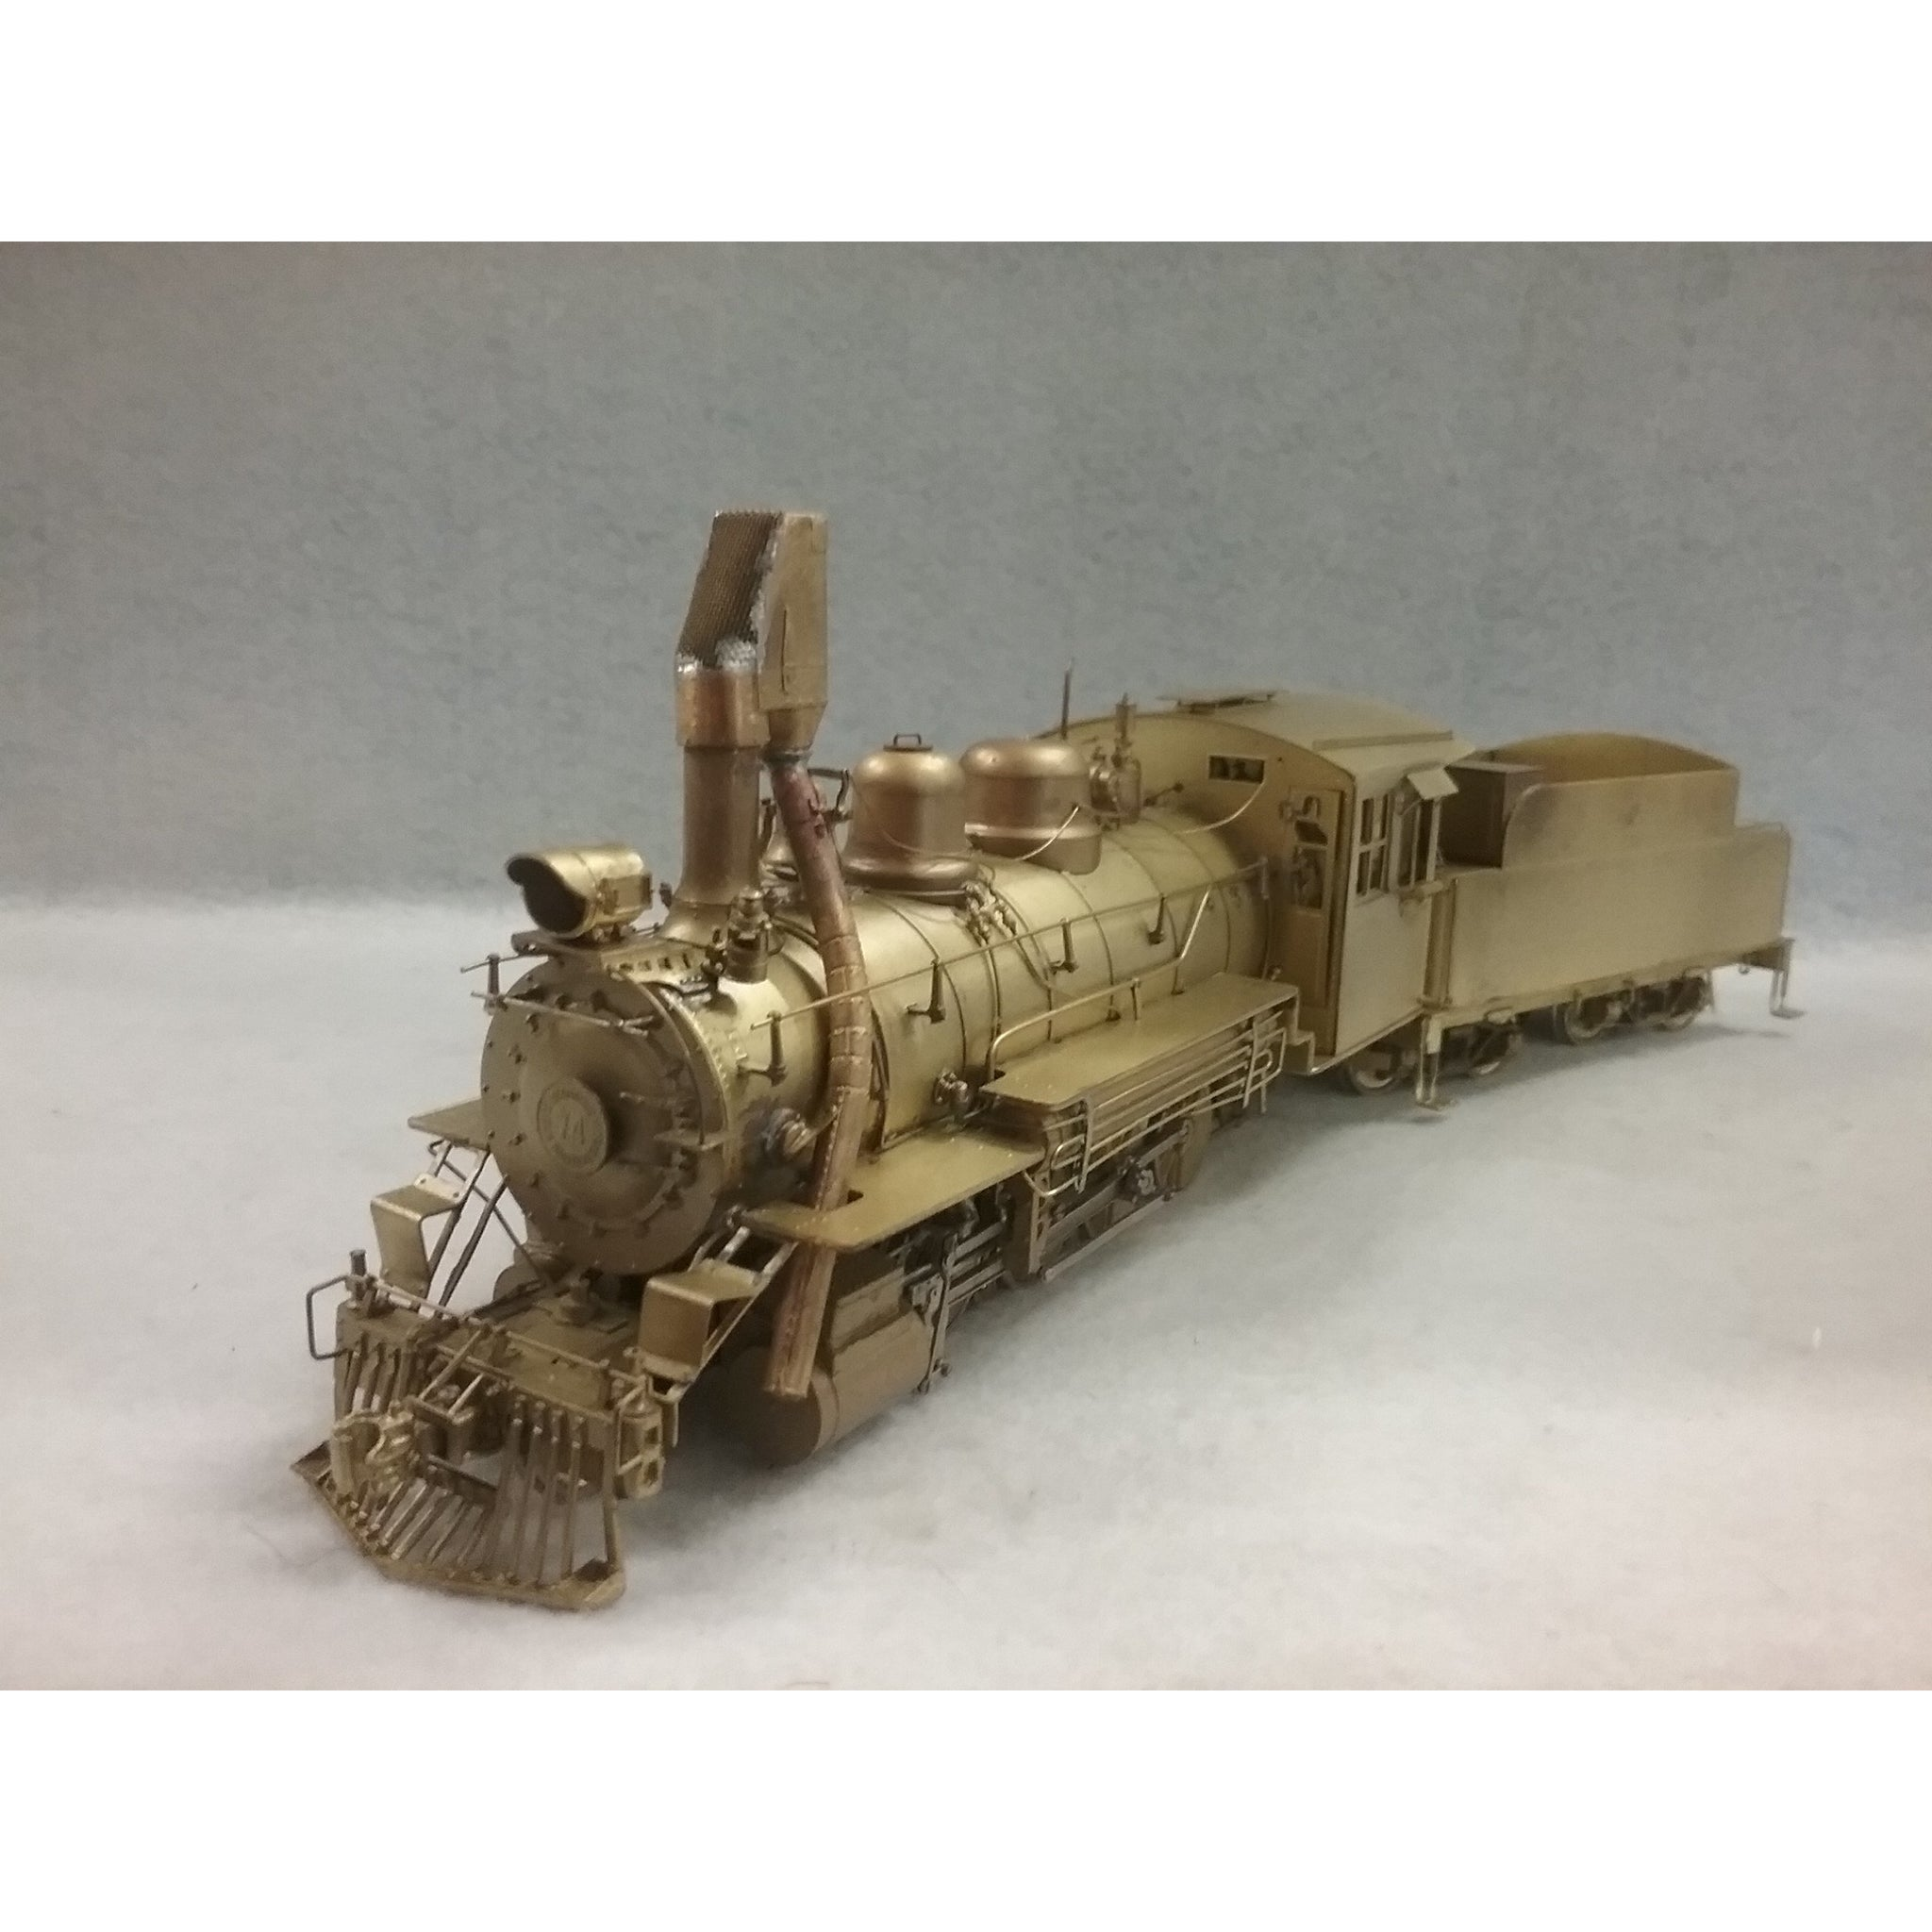 NIB On3 #74 Colorado & Southern Brass 2-8-0 Consolidation by